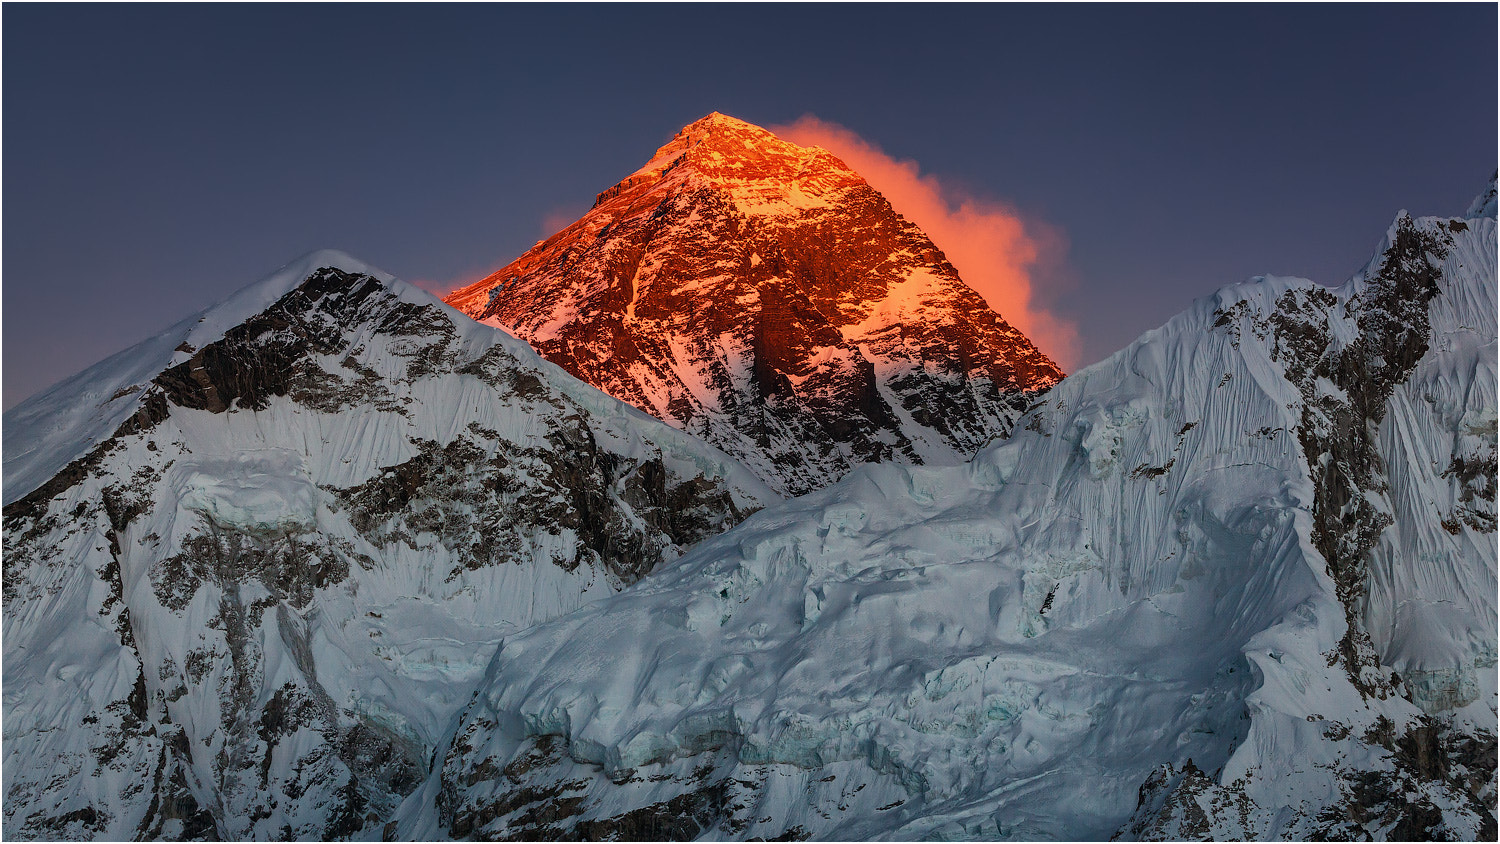 Photograph Everest view by Yuriy Shevchenko on 500px